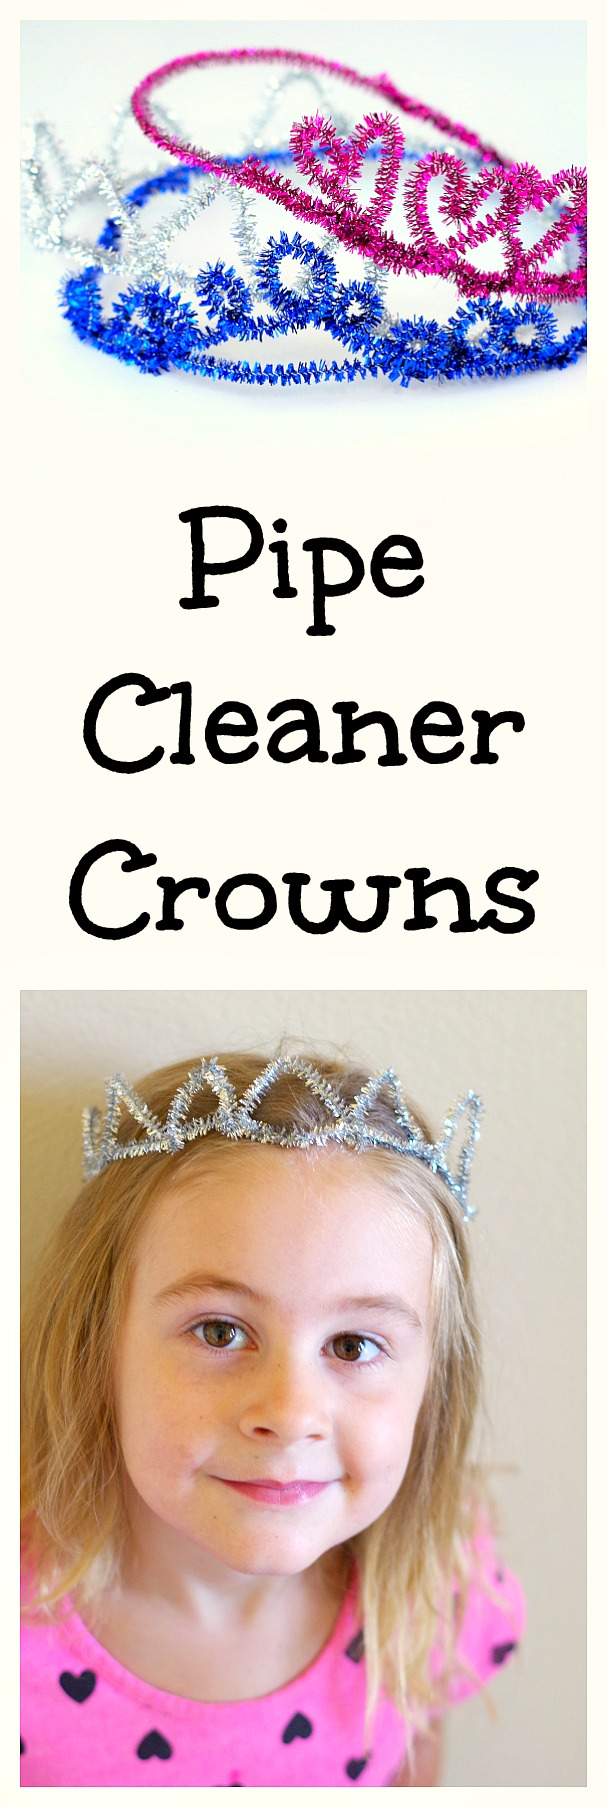 Pipe Cleaner Crowns are a simple craft for the little princess or prince. Also a fun party craft for kids and all you need to make them are pipe cleaners!